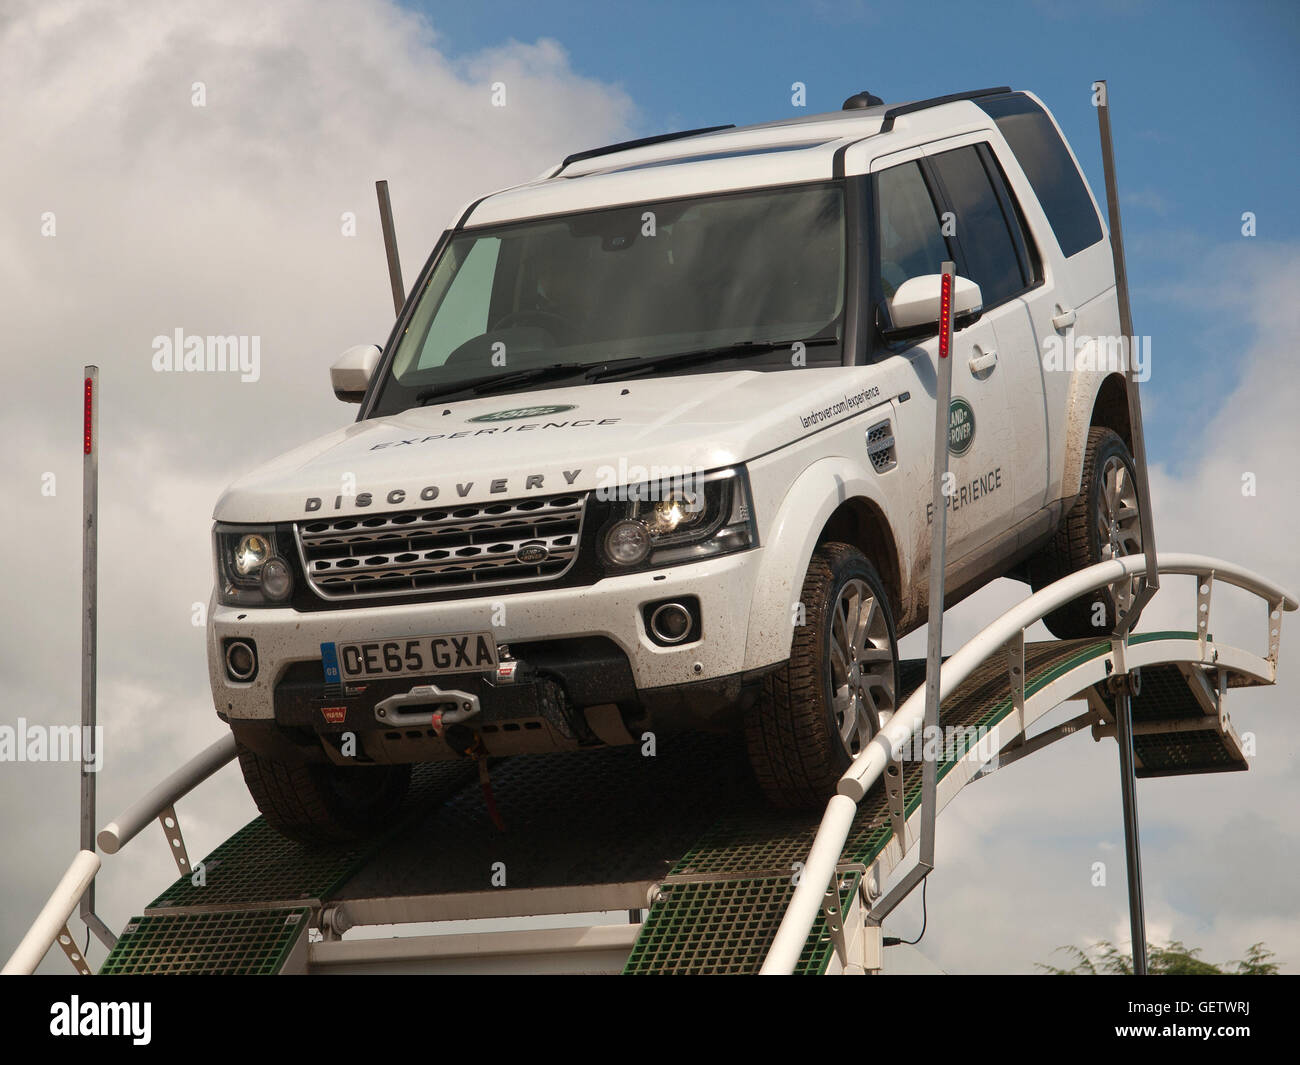 2016 Goodwood Festival of Speed UK - Land Rover Experience Stock Photo